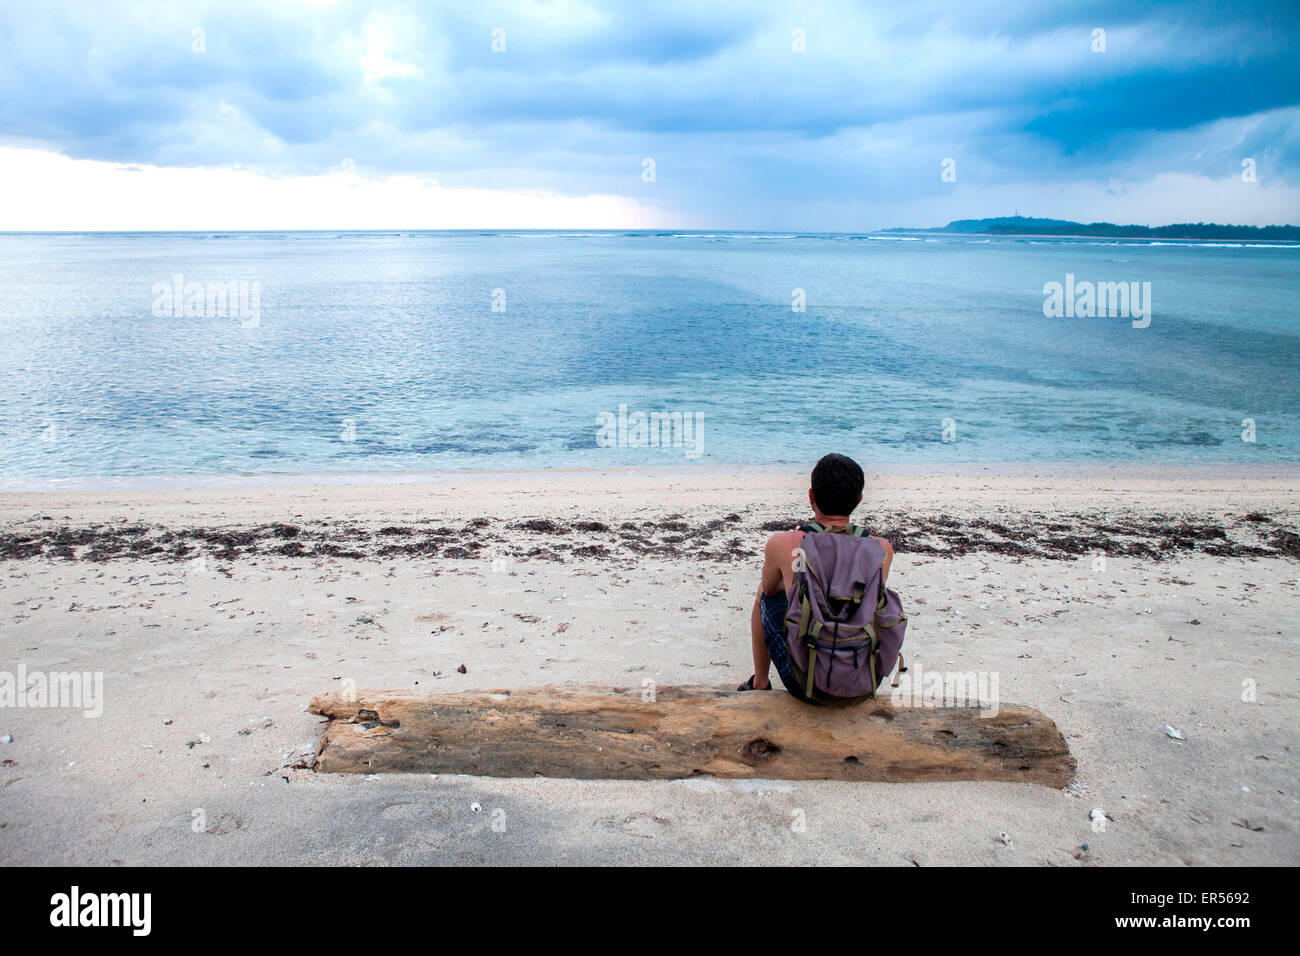 Gili Air, Indonesia. - Stock Image